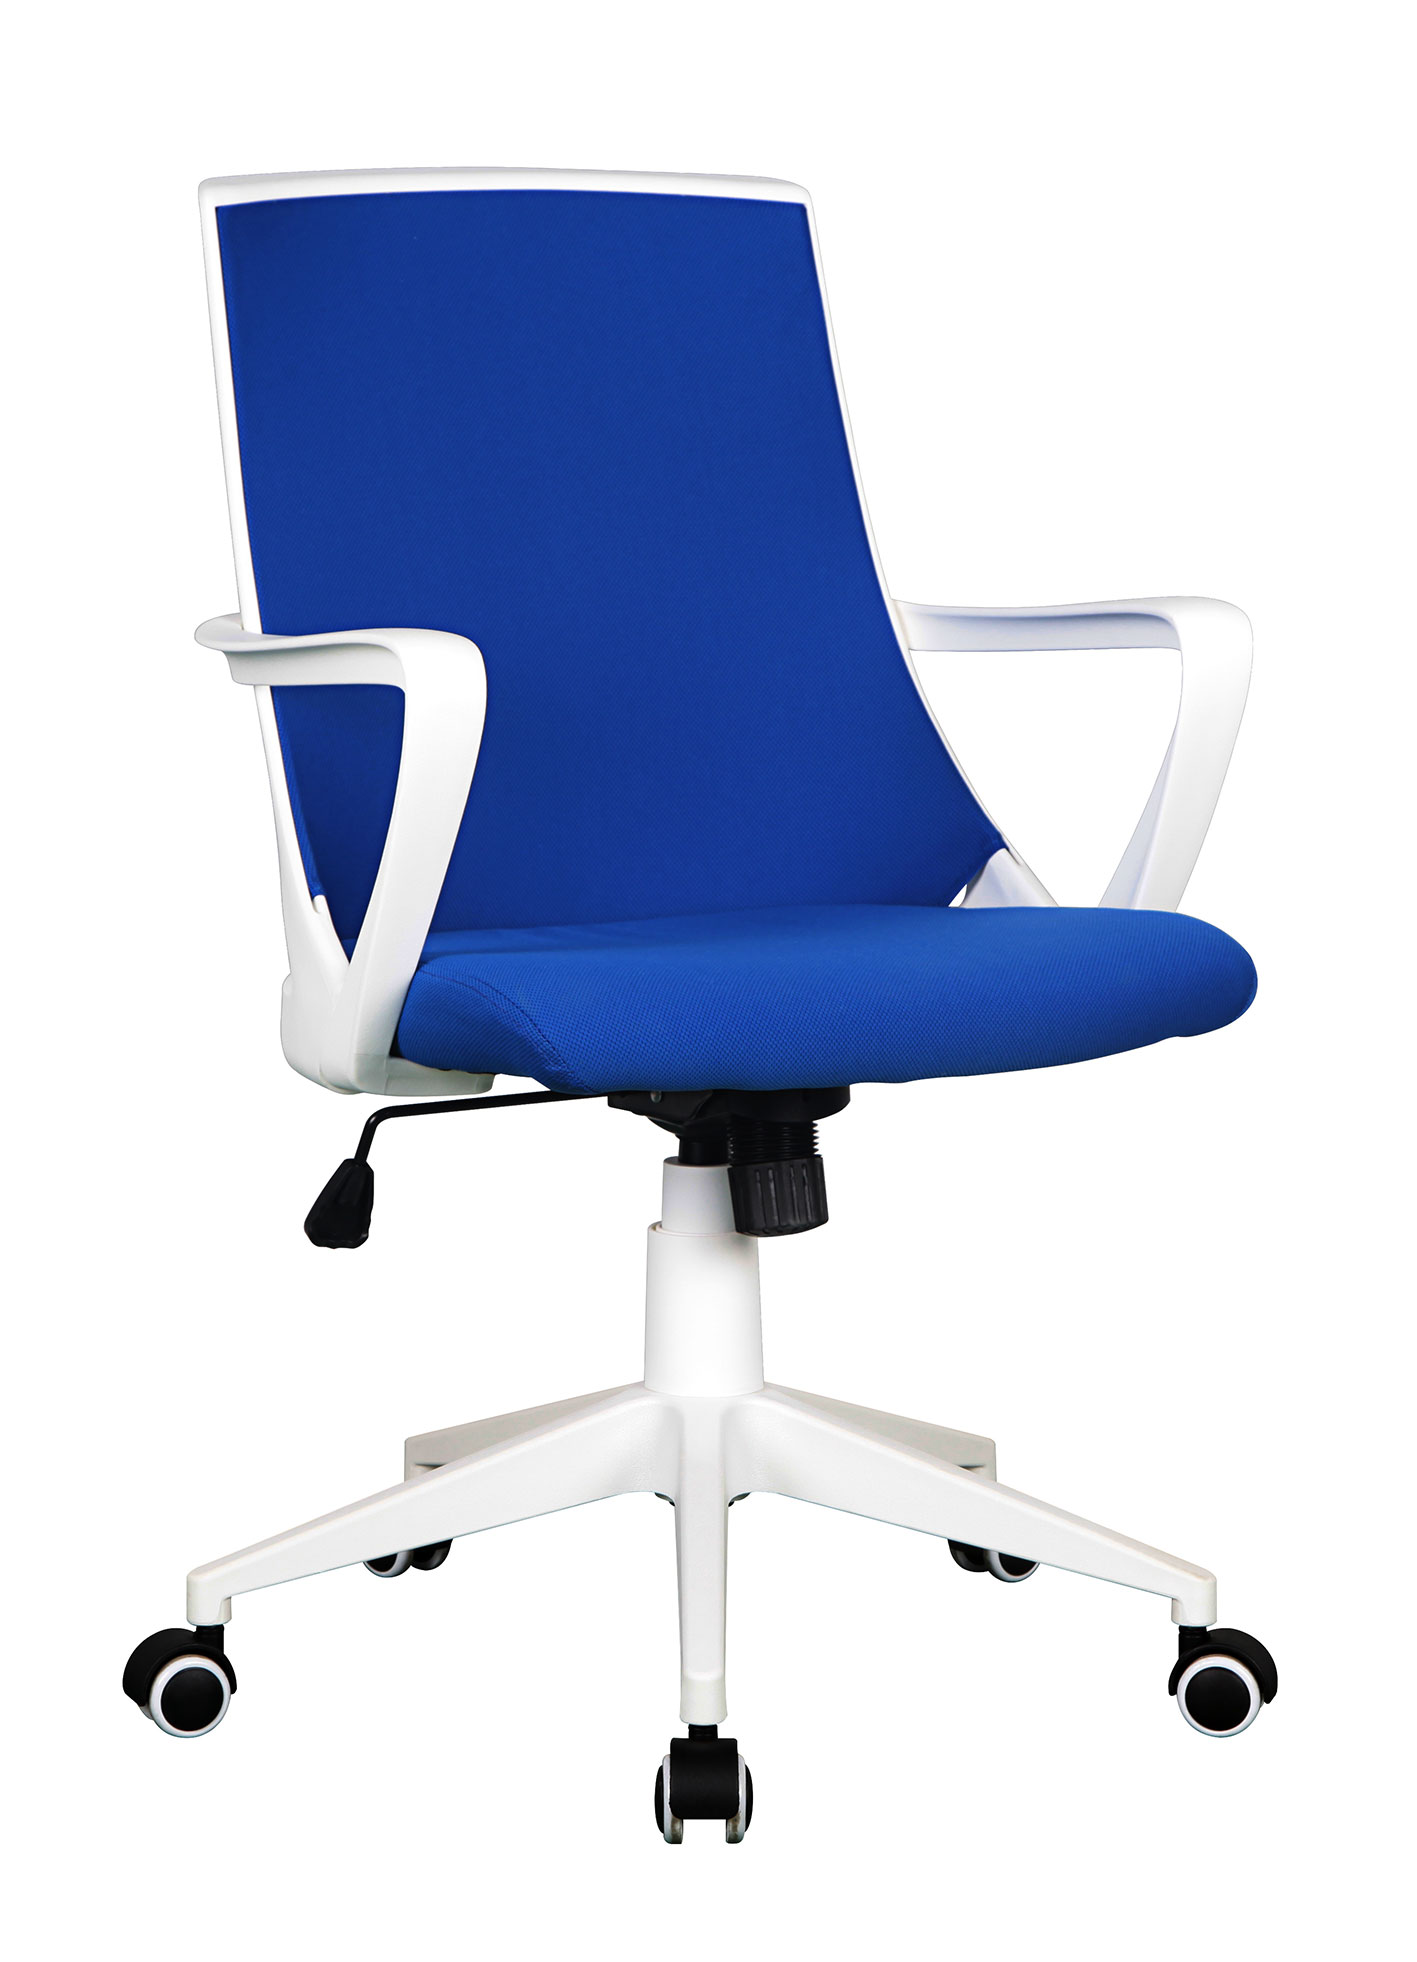 Sixbros office swivel chair different colors 0722m ebay for Different color chairs